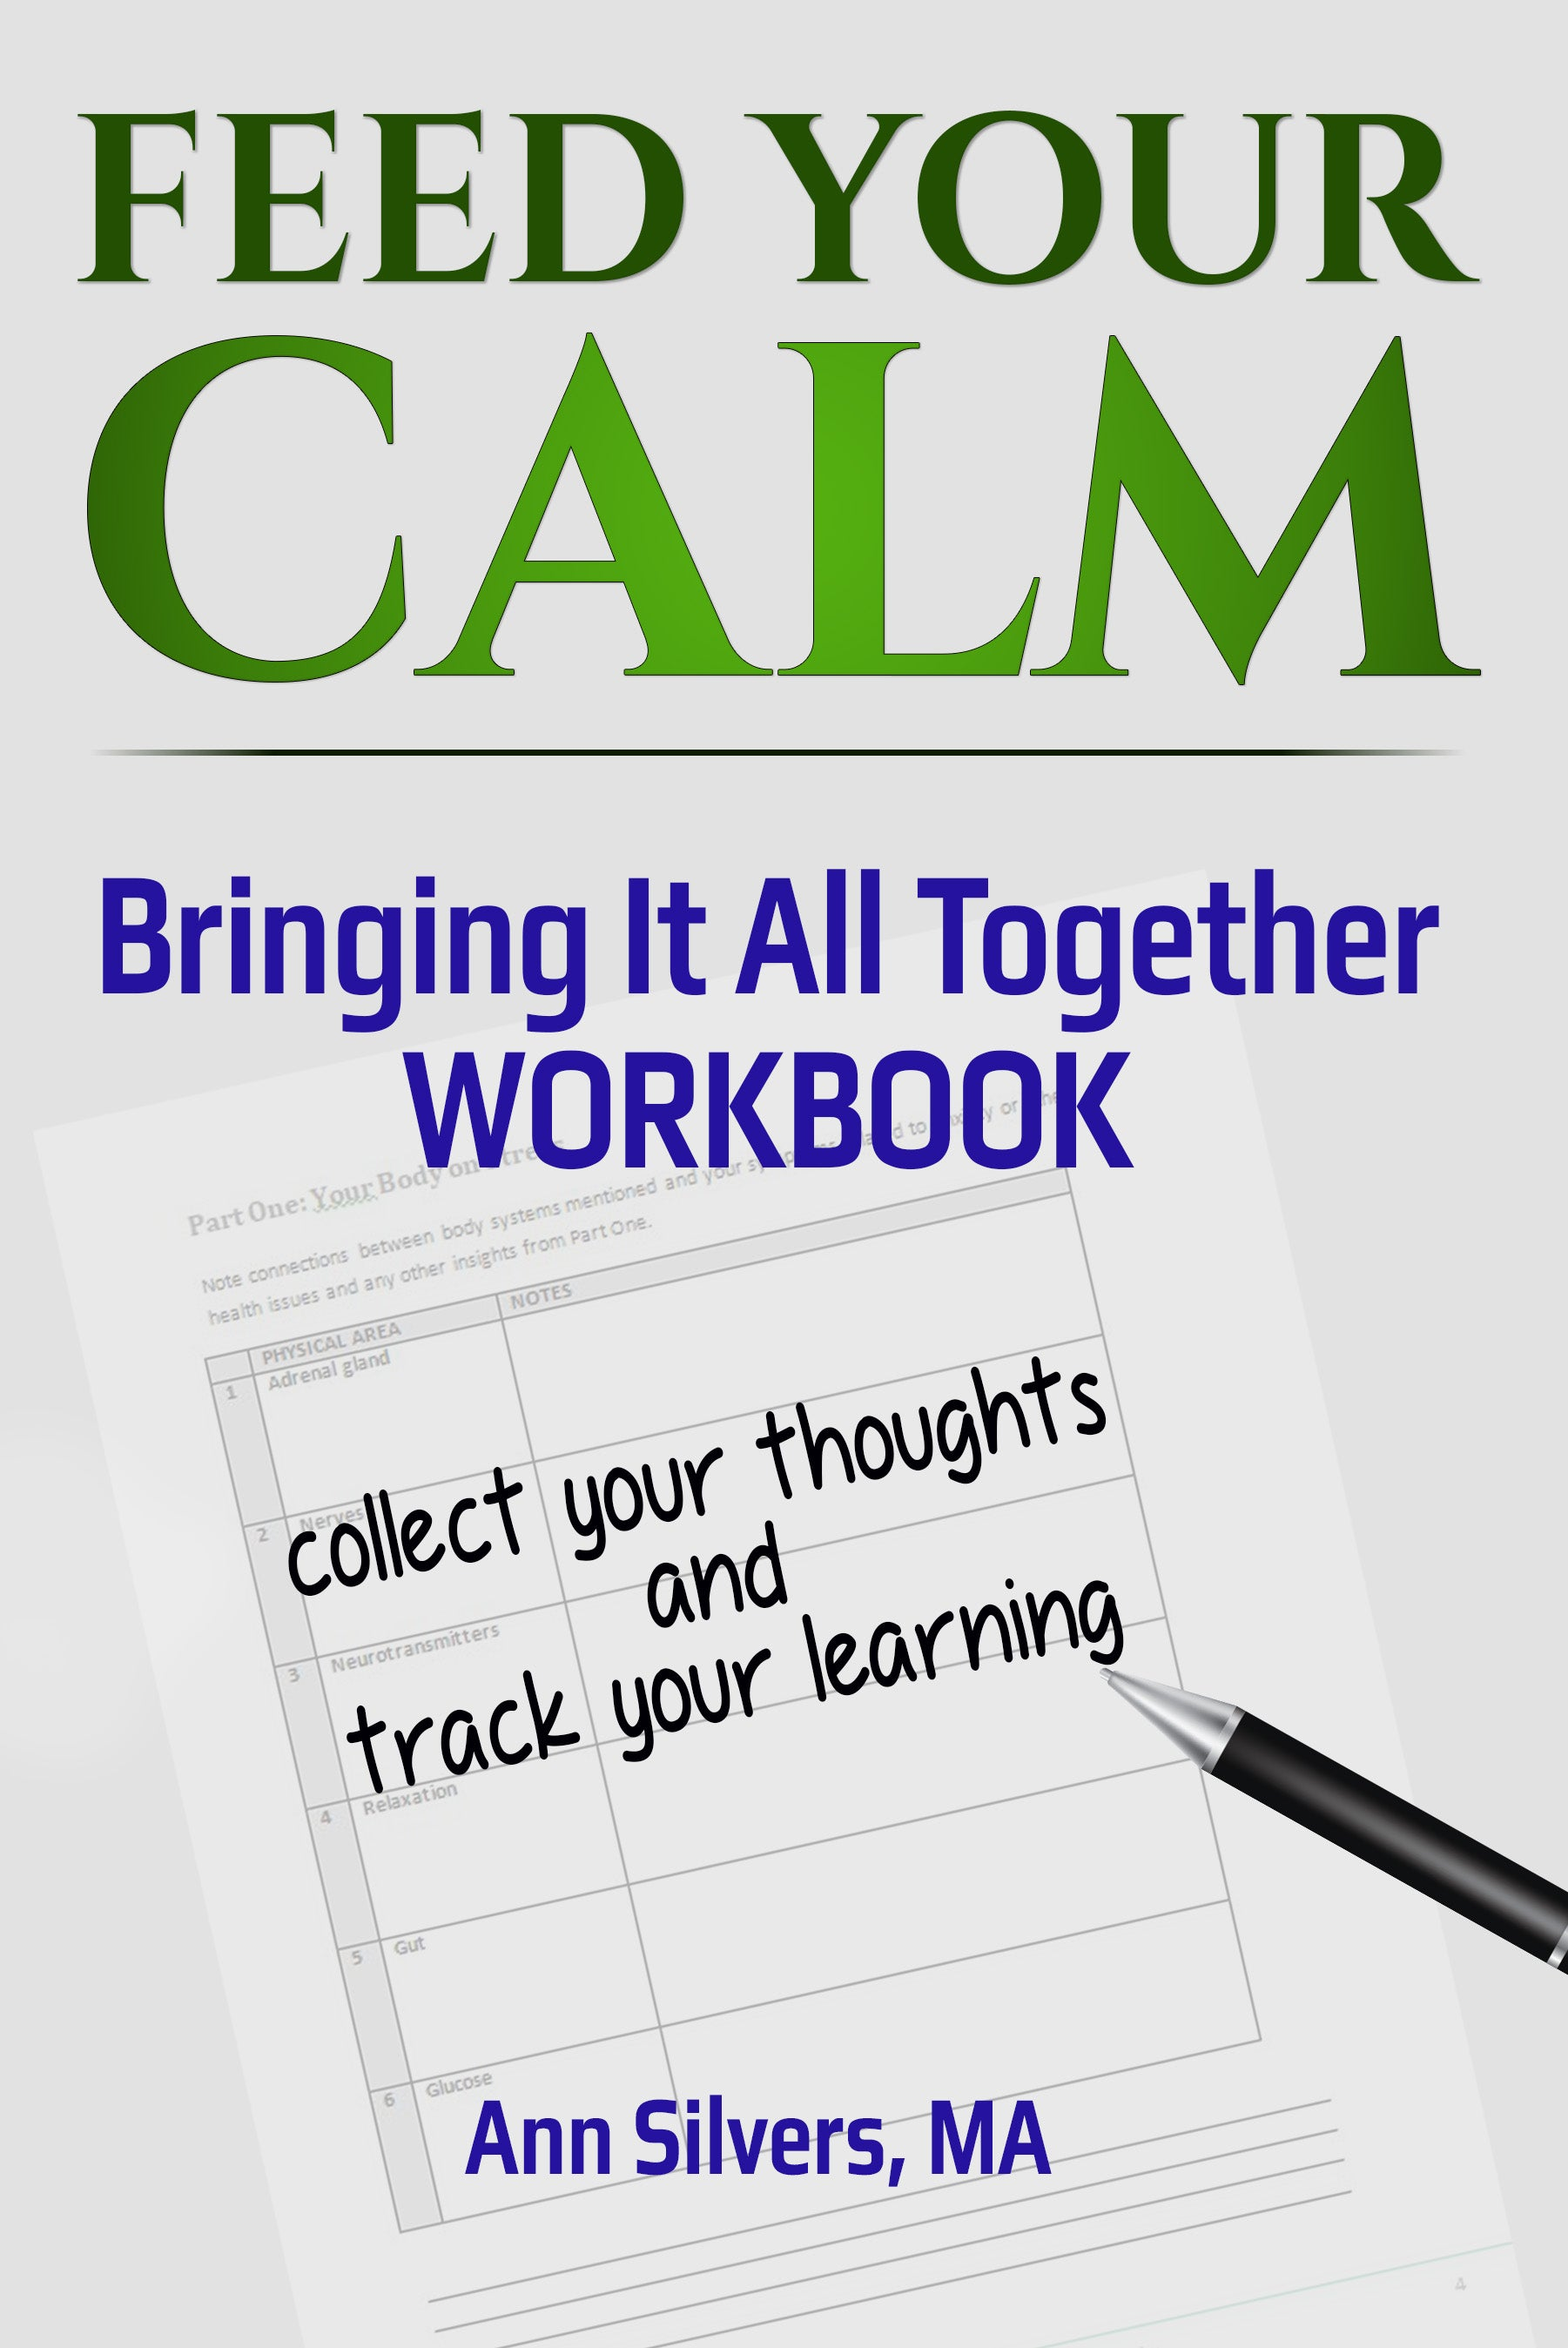 Feed Your Calm, Bringing It All Together Workbook